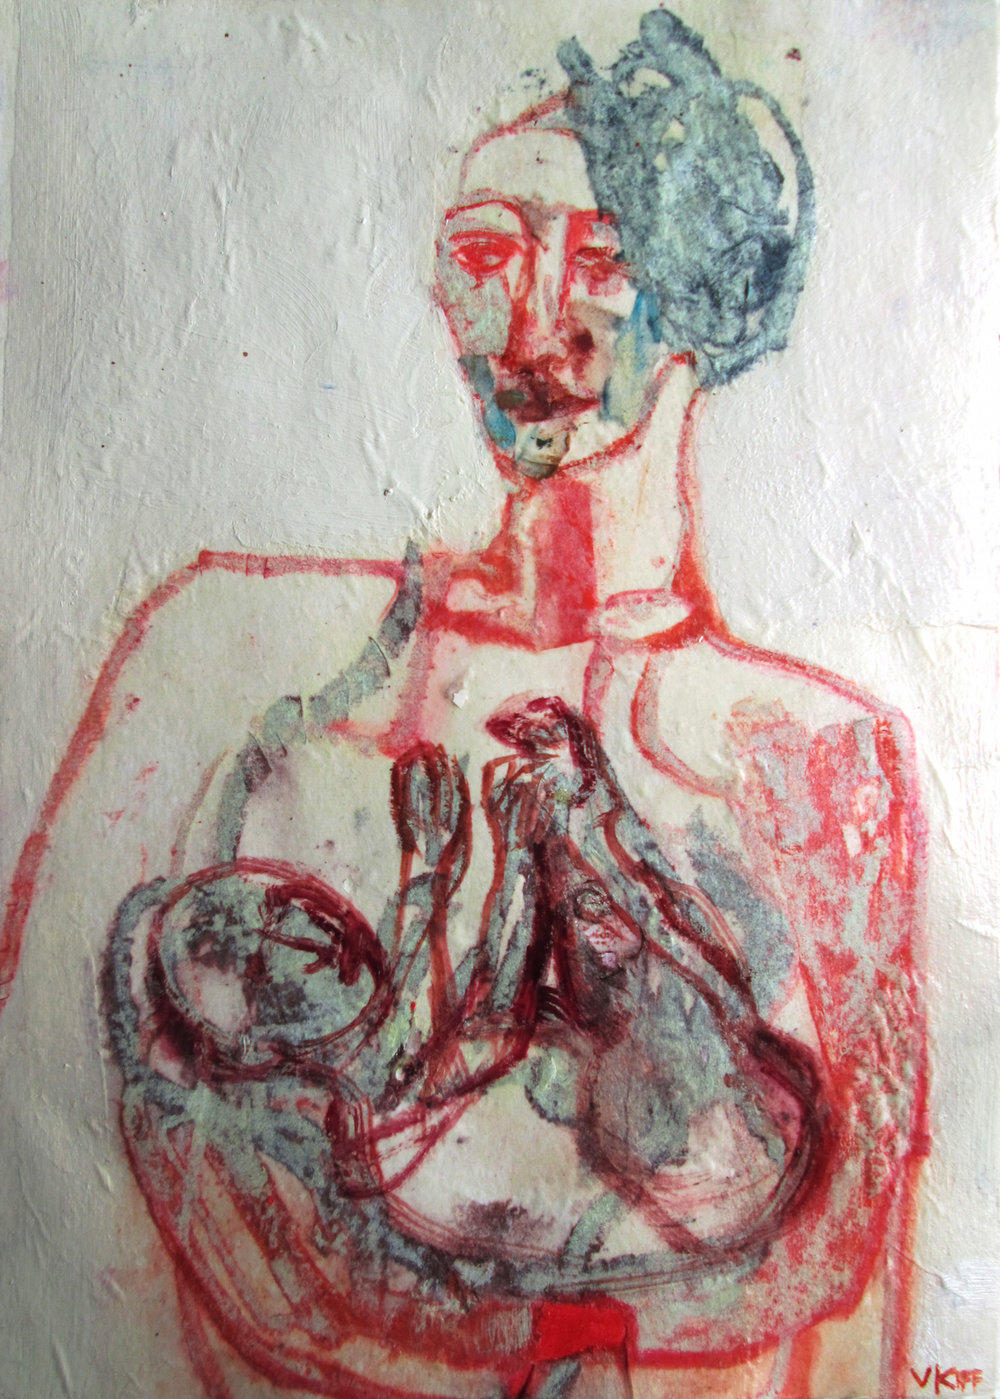 Title: Lutetian Reddish Size: 19 x 28 cm Medium: Ink and pastel on paper  SOLD